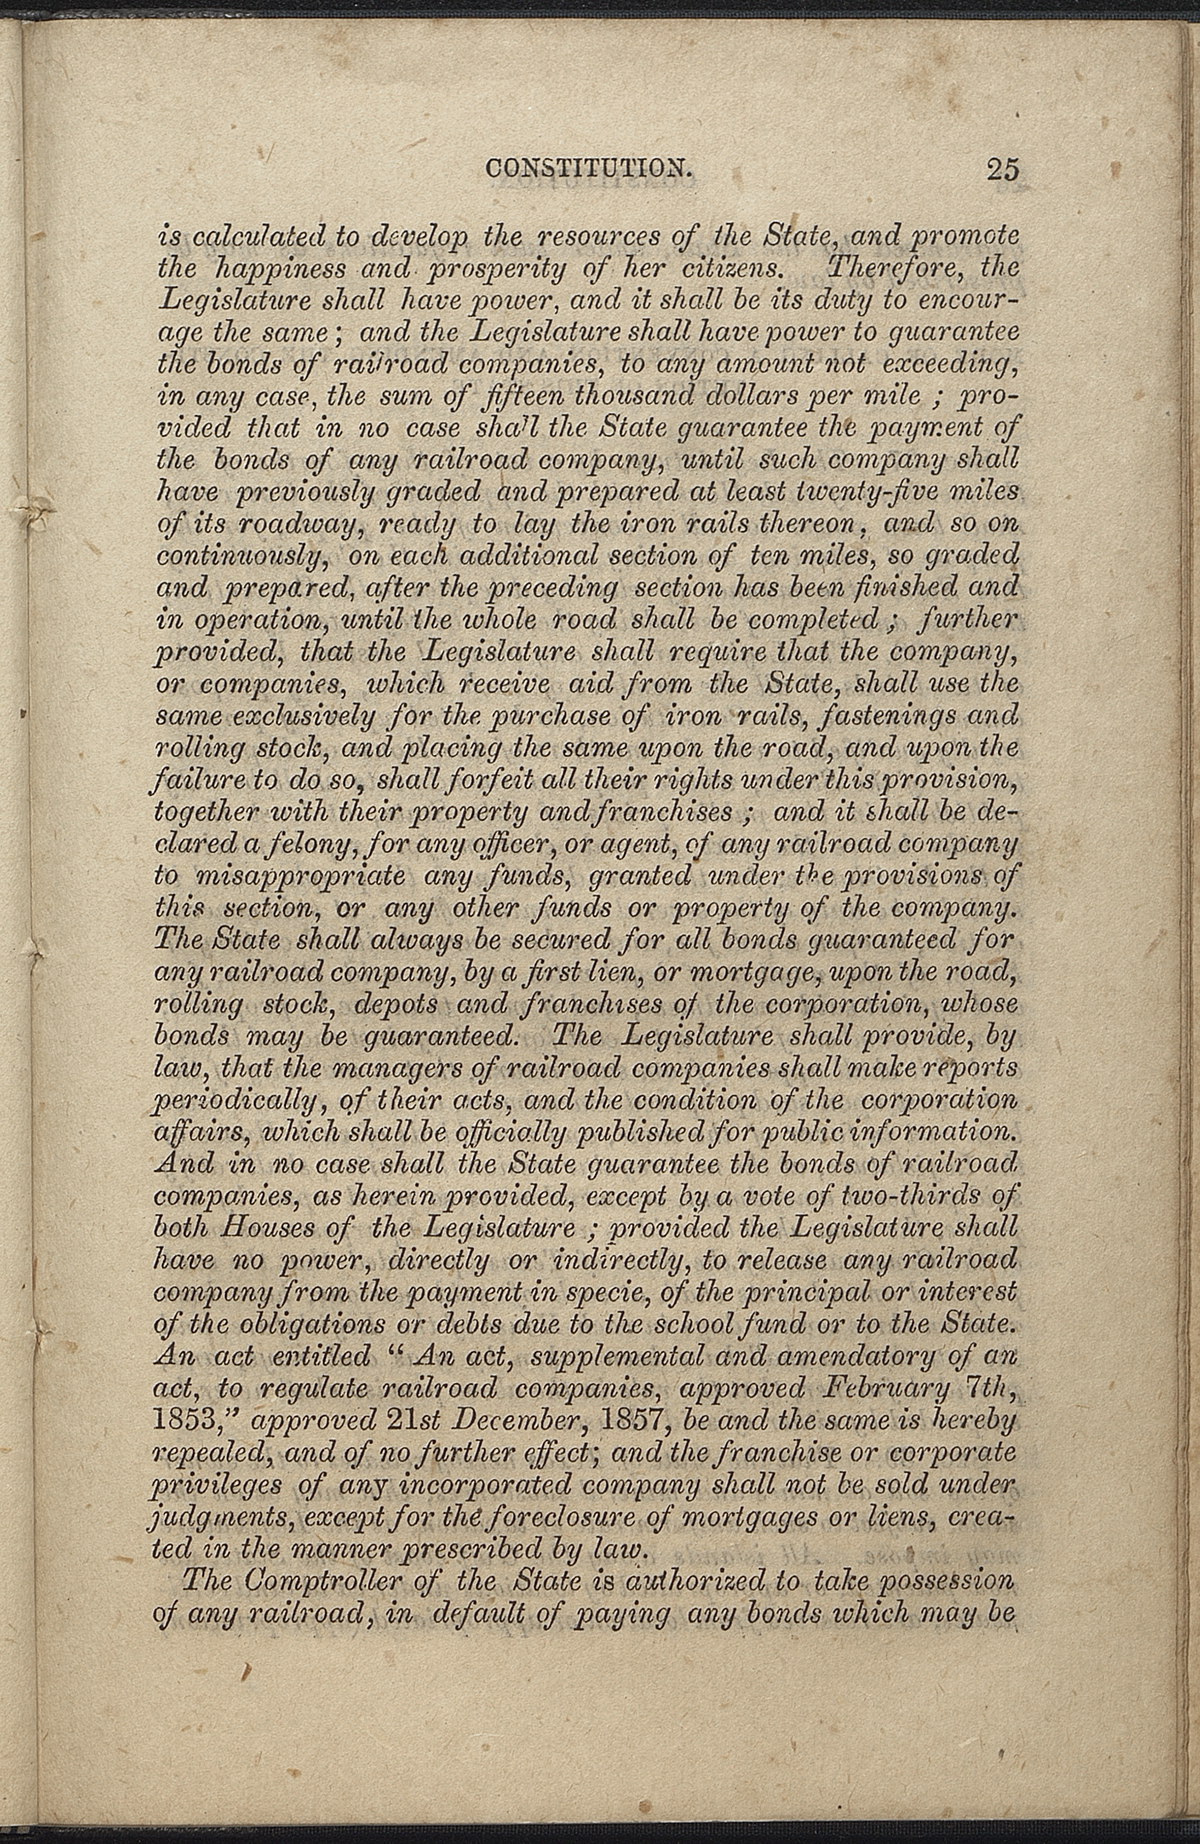 Article VII, Section 36